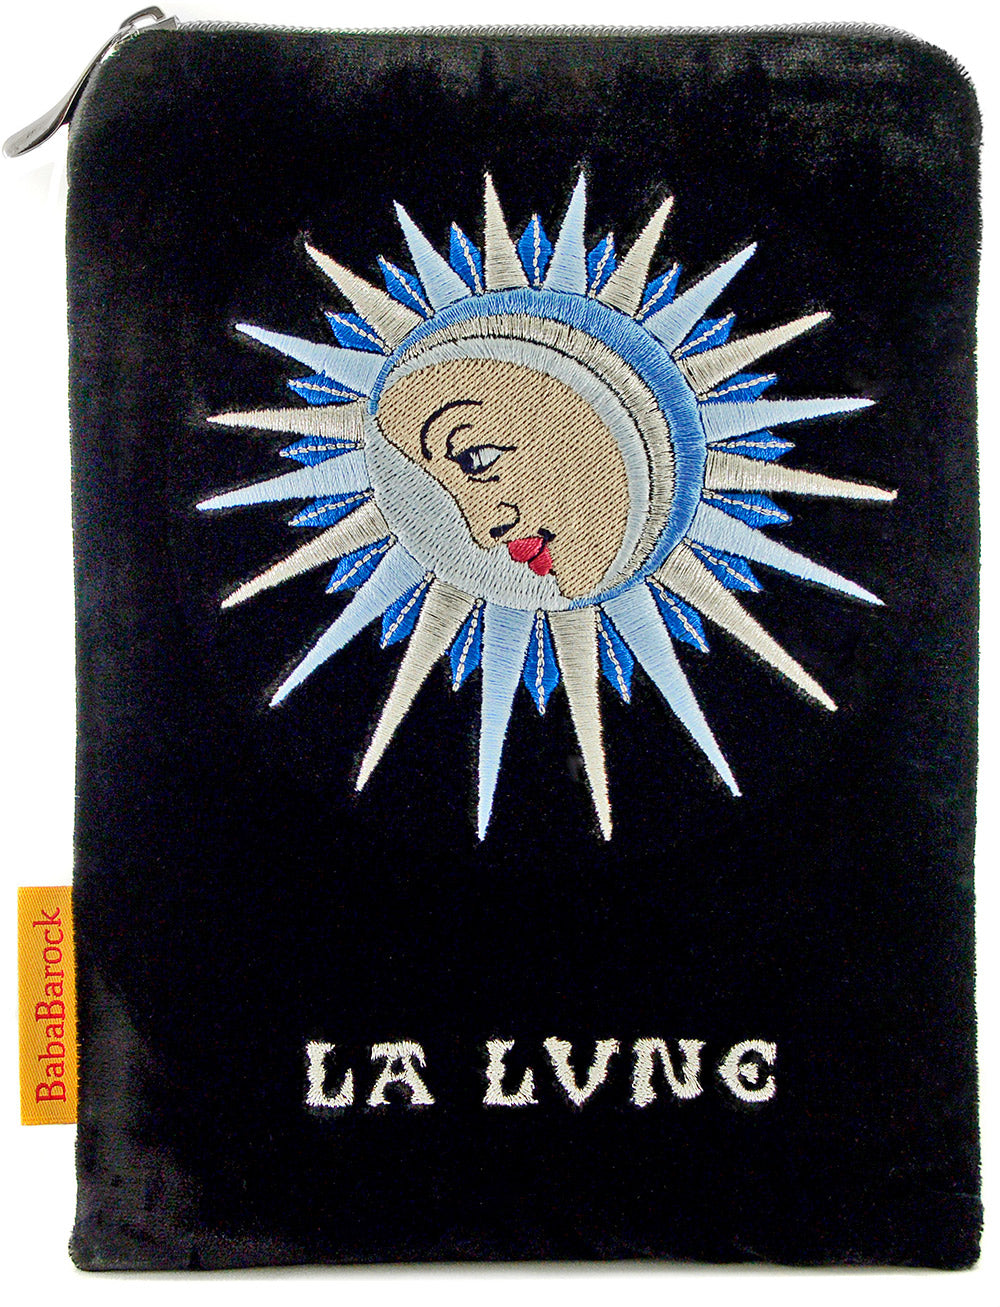 Embroidered pouch, La Lune, velvet tarot bag with embroidery, The Moon, Baba Studio limited edition